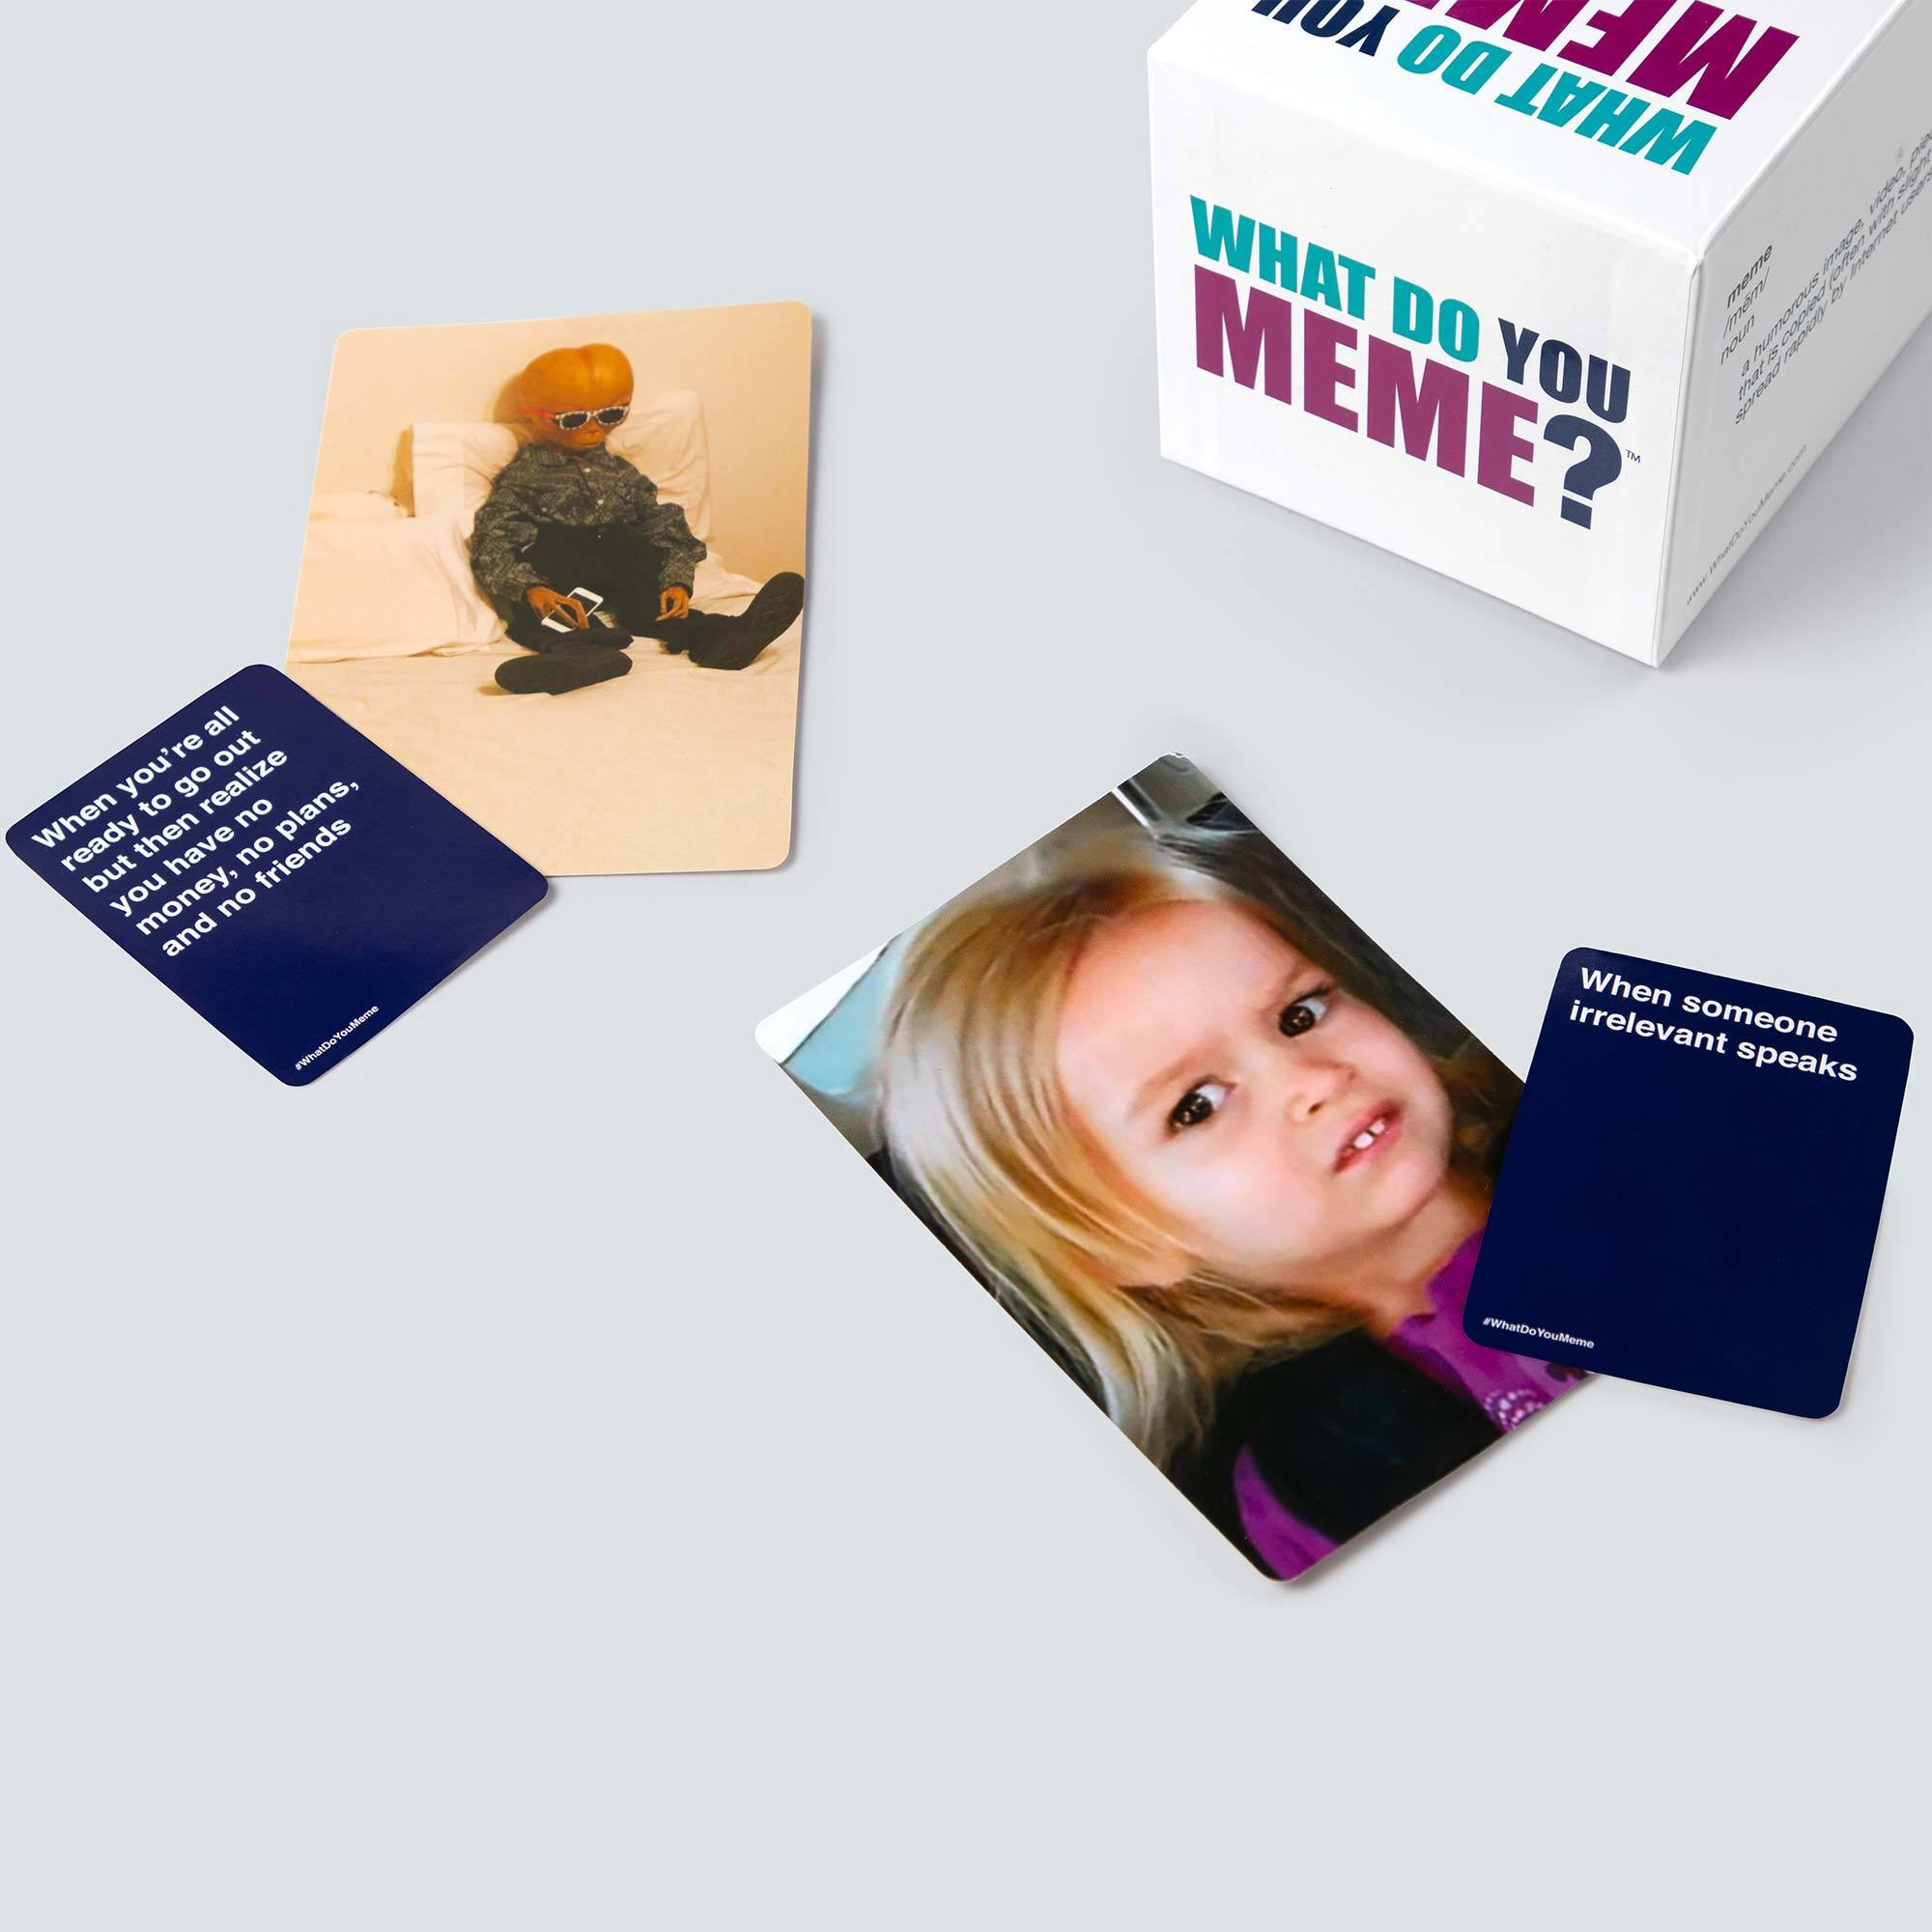 What Do You Meme? Adult Party Game — WholeStuff